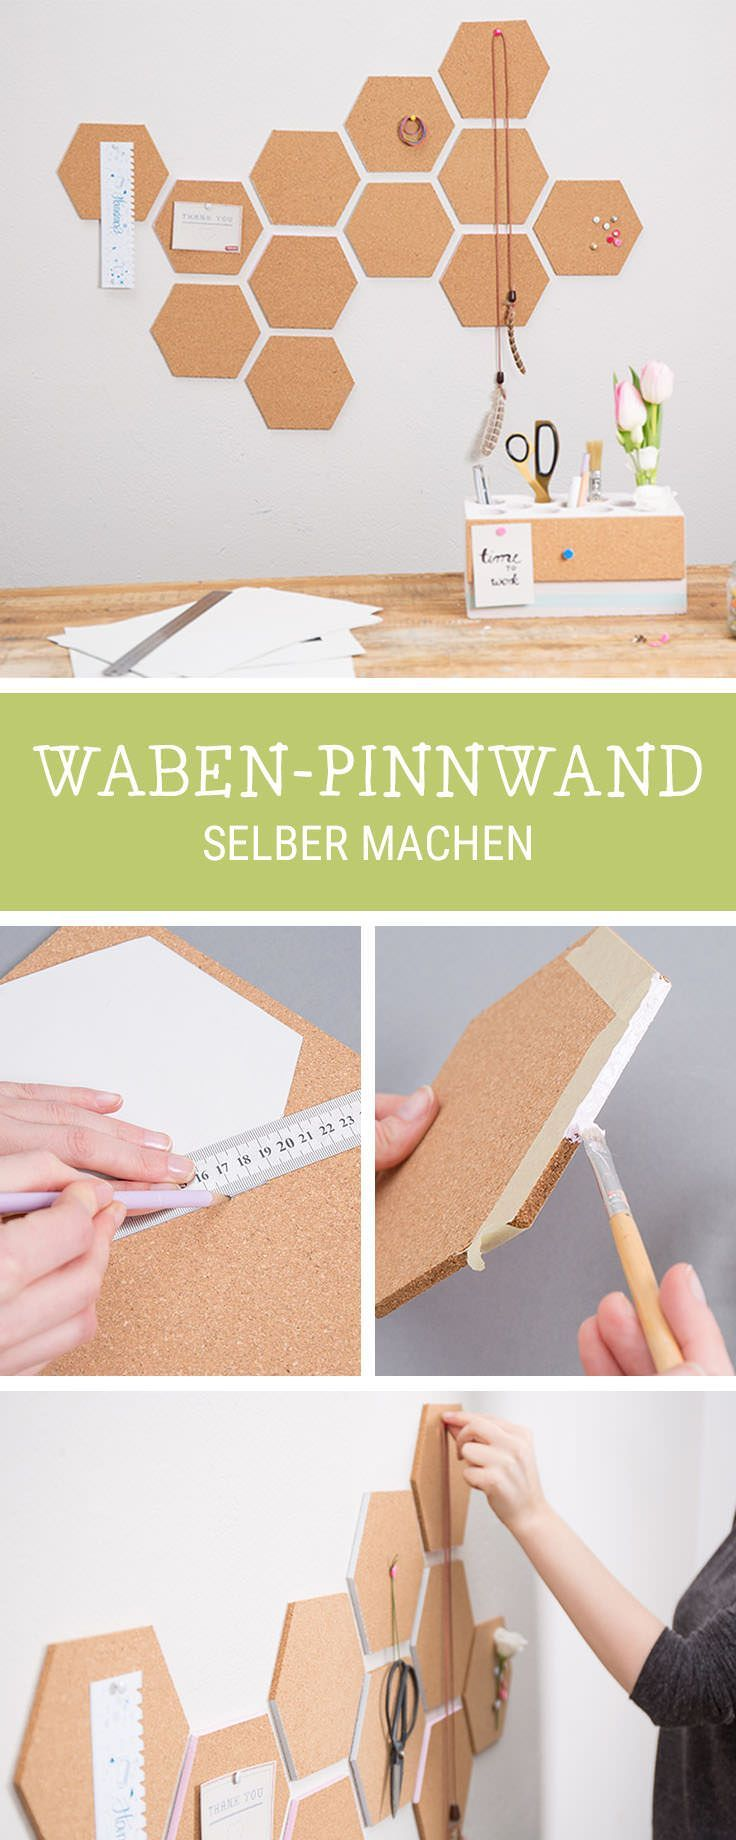 diy anleitung waben pinnwand aus kork selber machen via. Black Bedroom Furniture Sets. Home Design Ideas